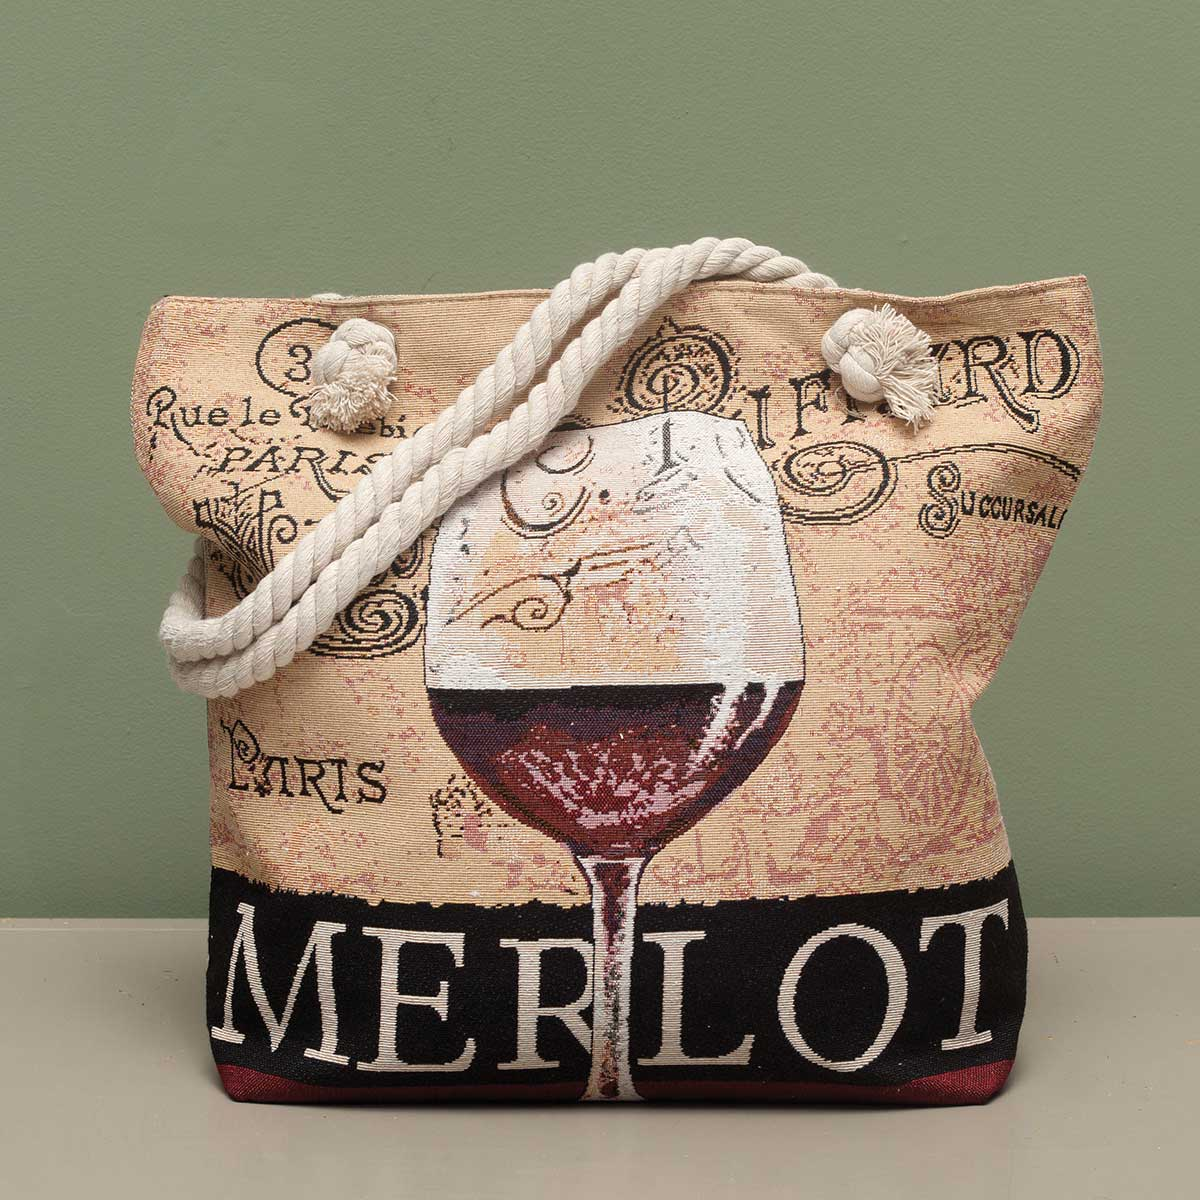 "Merlot Tapestry Bag 17.5""x5""x14"" with 10"" Shoulder Strap, Lining"